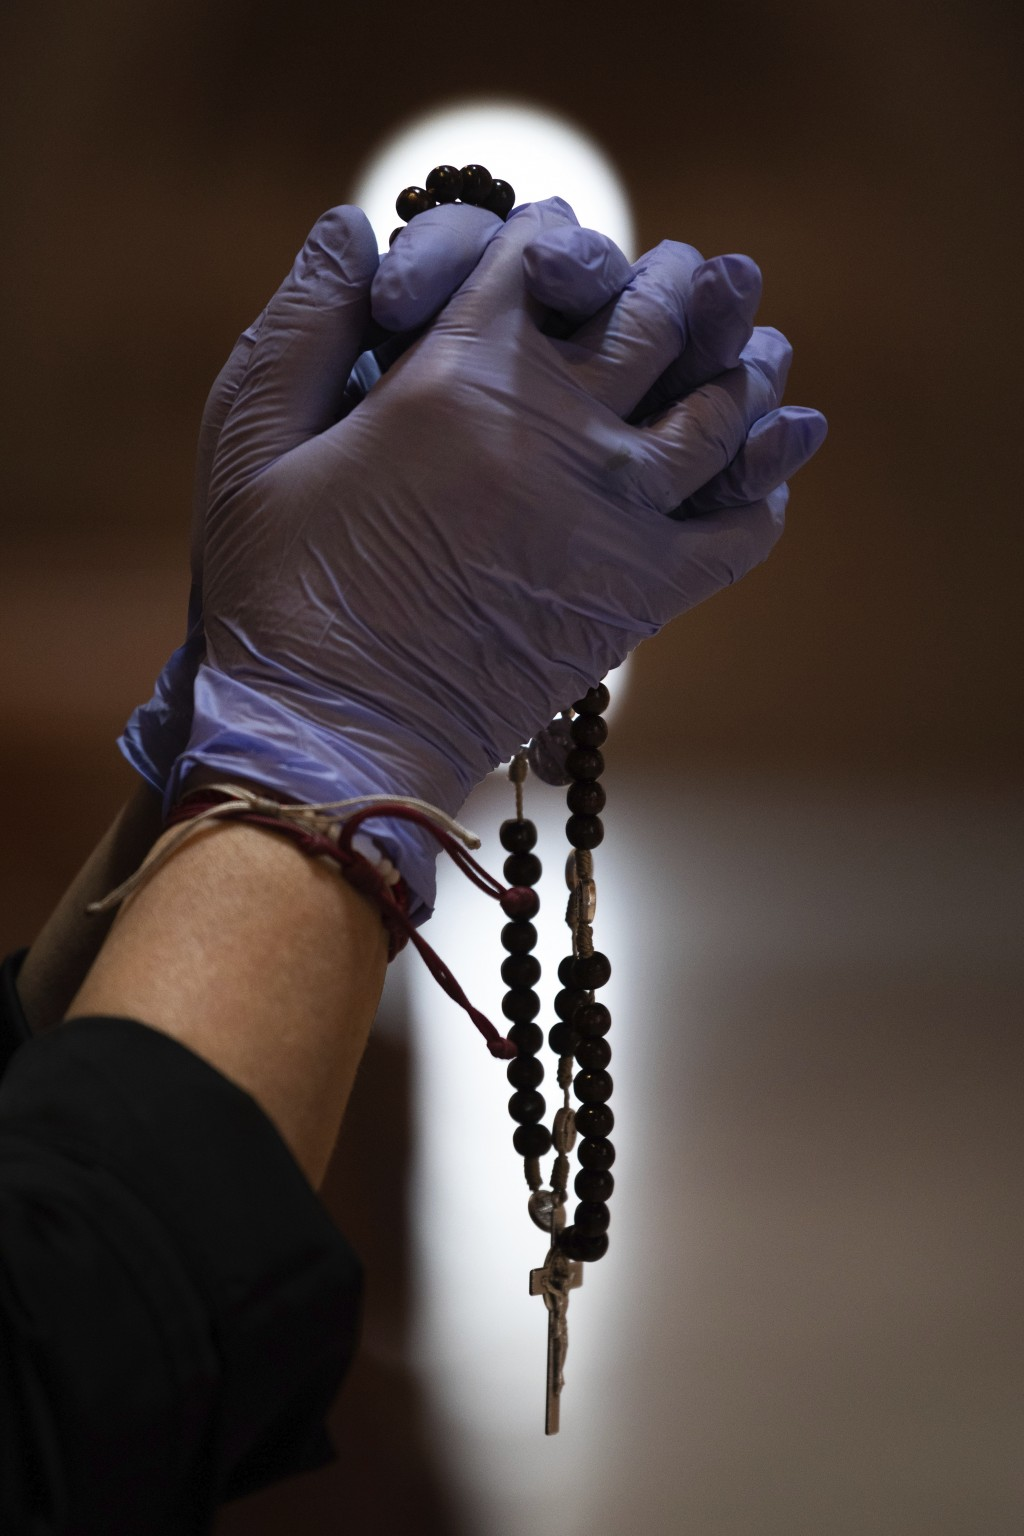 A Catholic worshipper using protective gloves prays with a rosary beads at the Santa Maria de Cana parish in Pozuelo de Alarcon, outskirts Madrid, Spa...